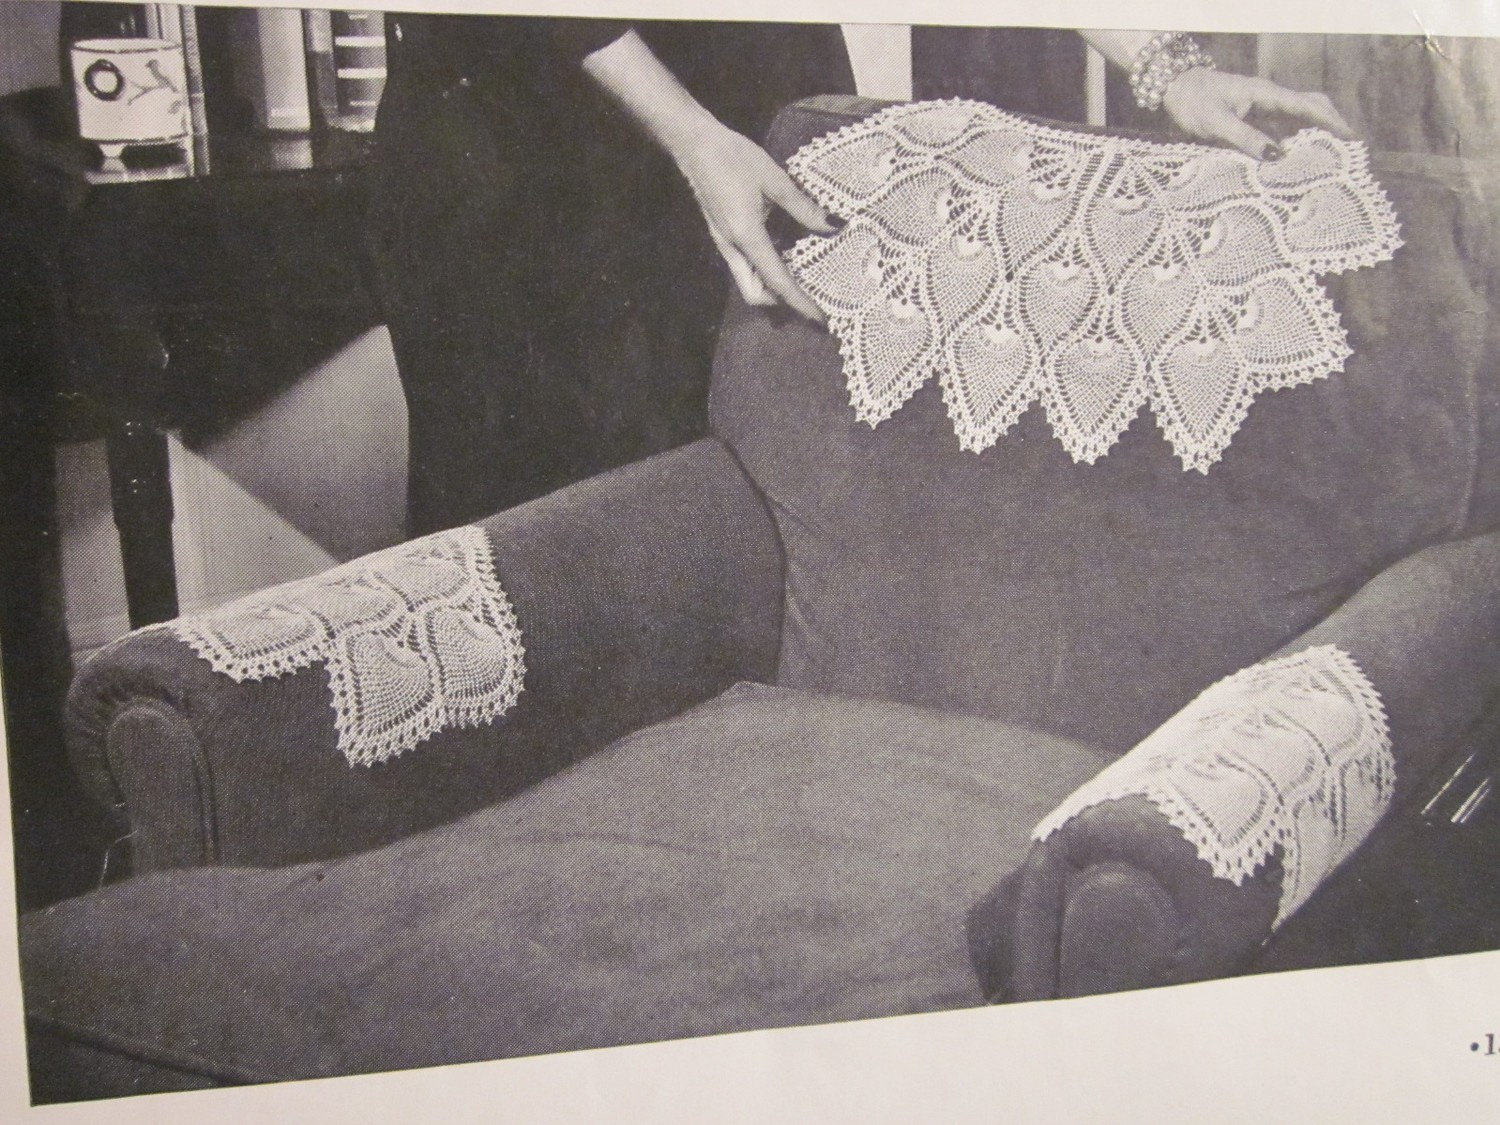 chair arm protectors pattern fairfield furniture chairs crochet 1940s pineapple set antimacassar vintage